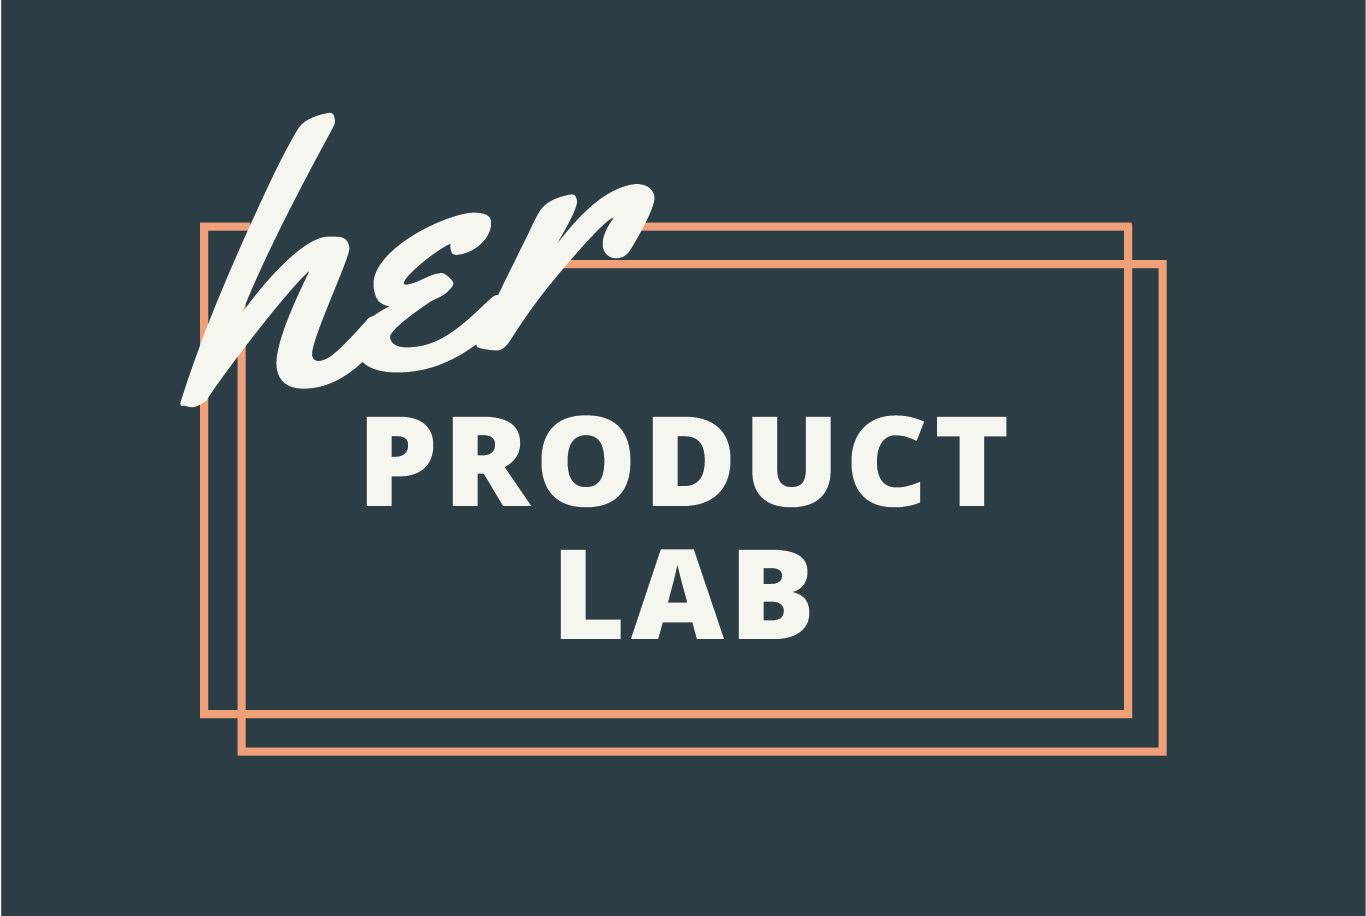 Her Product Lab is Giving Women in Product Management the Chance to Shine